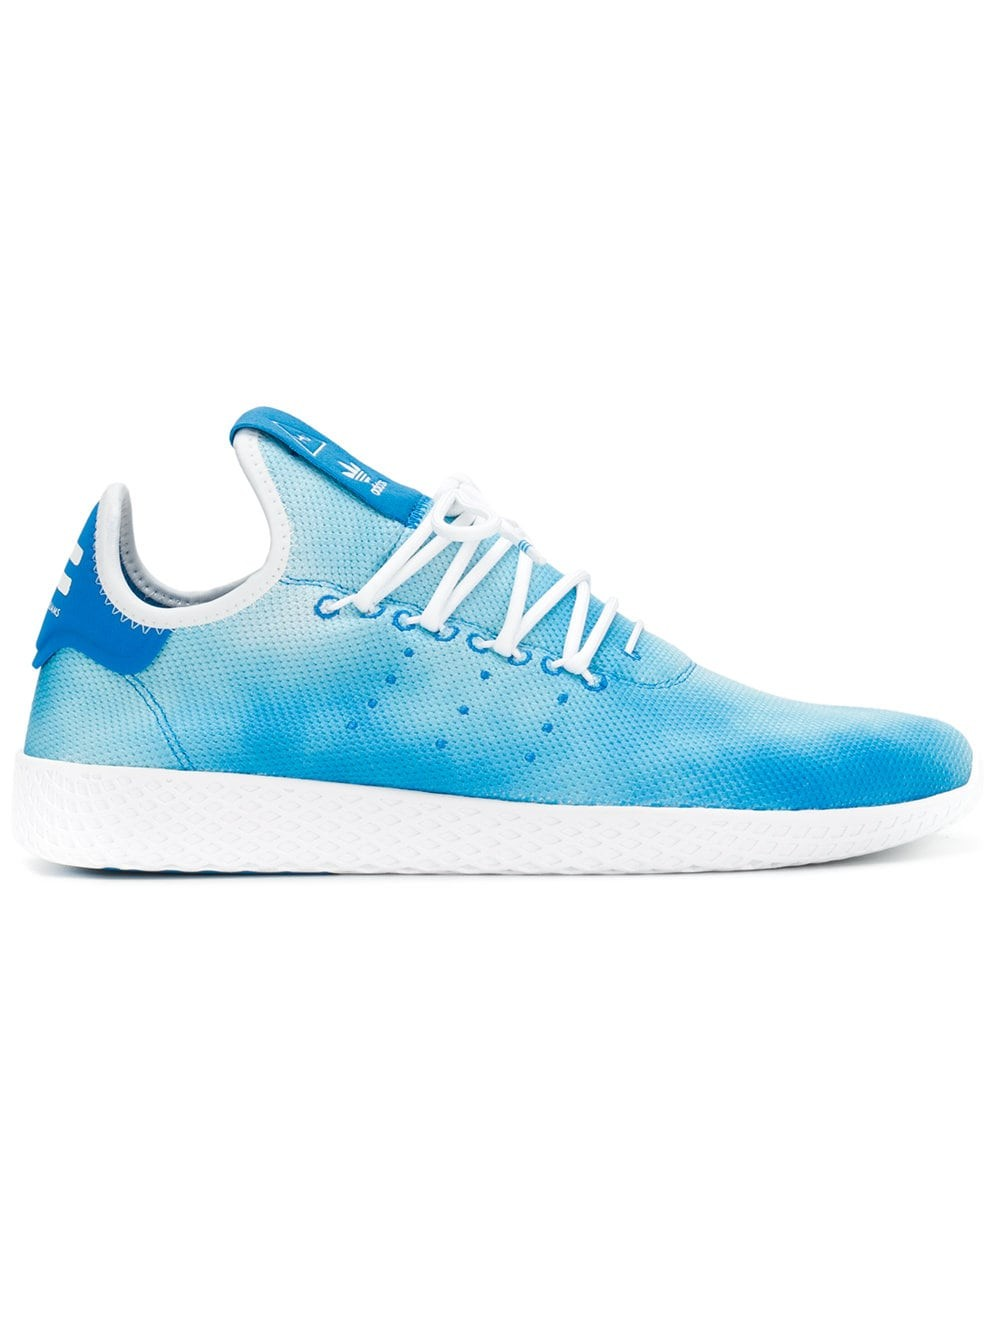 Adidas Original Tennis HU Holi Pharrell Williams Azules Blancas Da9618